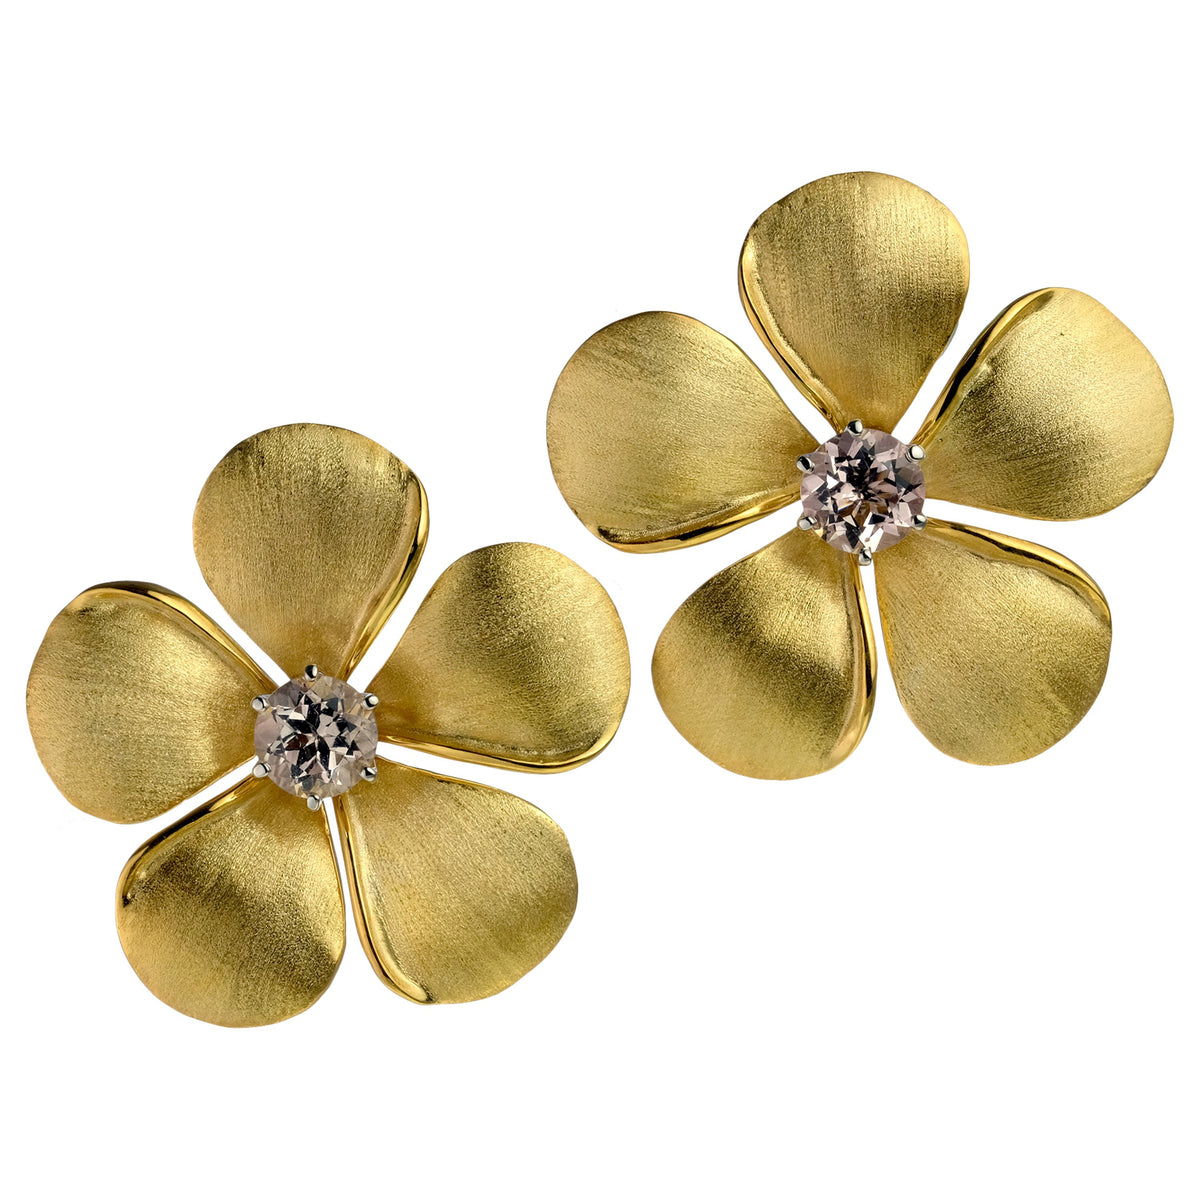 Kalachuchi Earring Jacket, Large, Satin Finish (available in yellow, white, and rose gold)